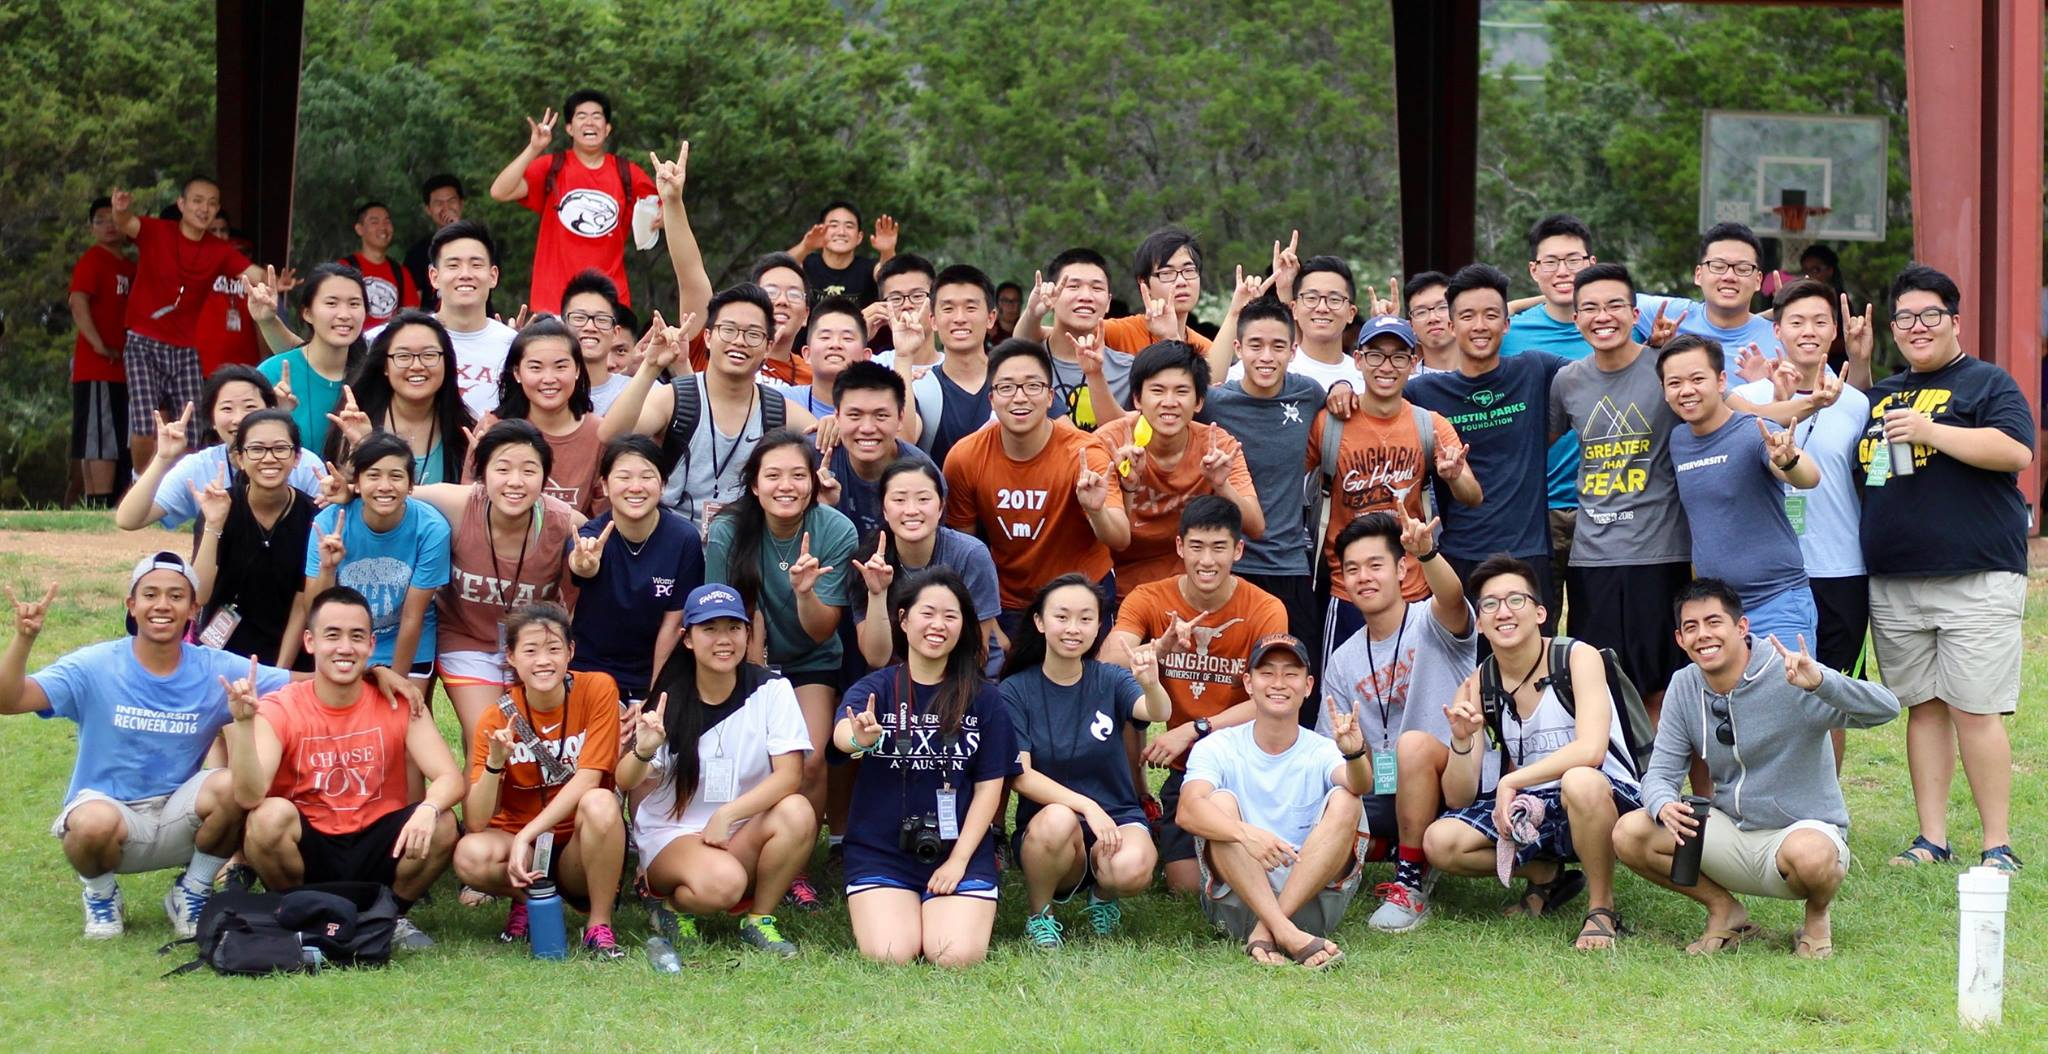 Asian American Campus Ministry - We are the Asian American chapter of InterVarsity Christian Fellowship at UT Austin.